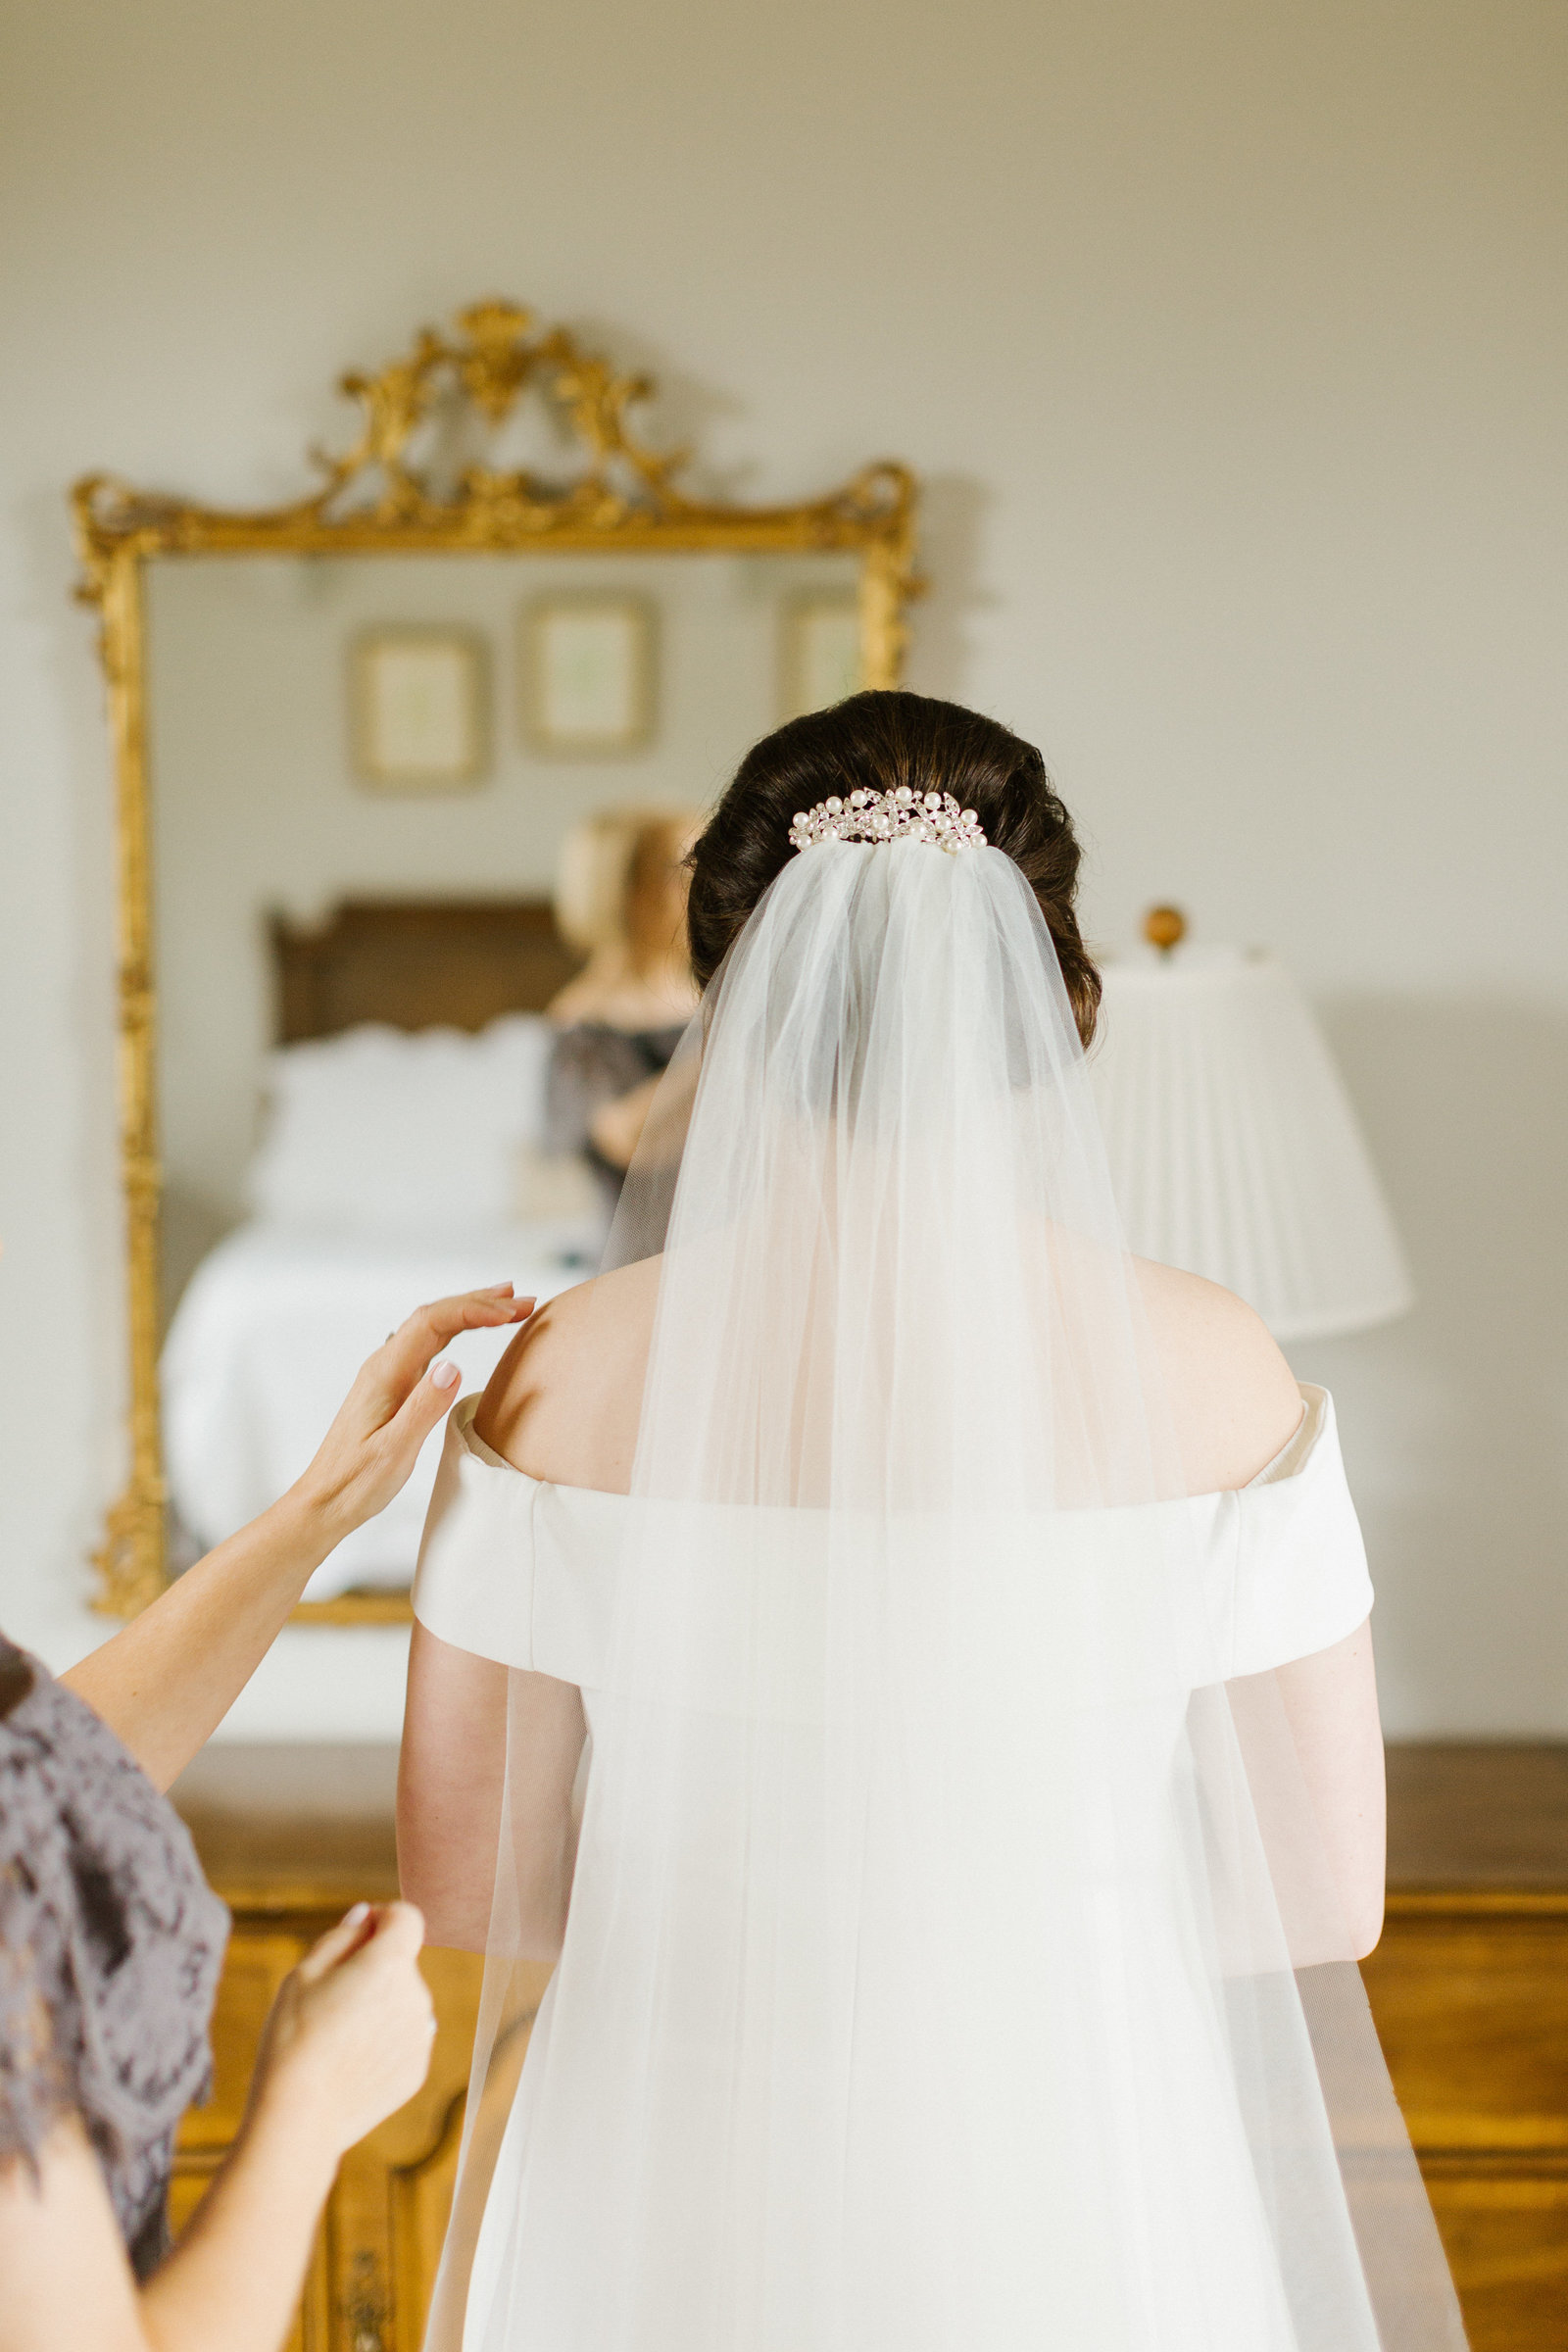 01_Bride-Getting-Ready_154